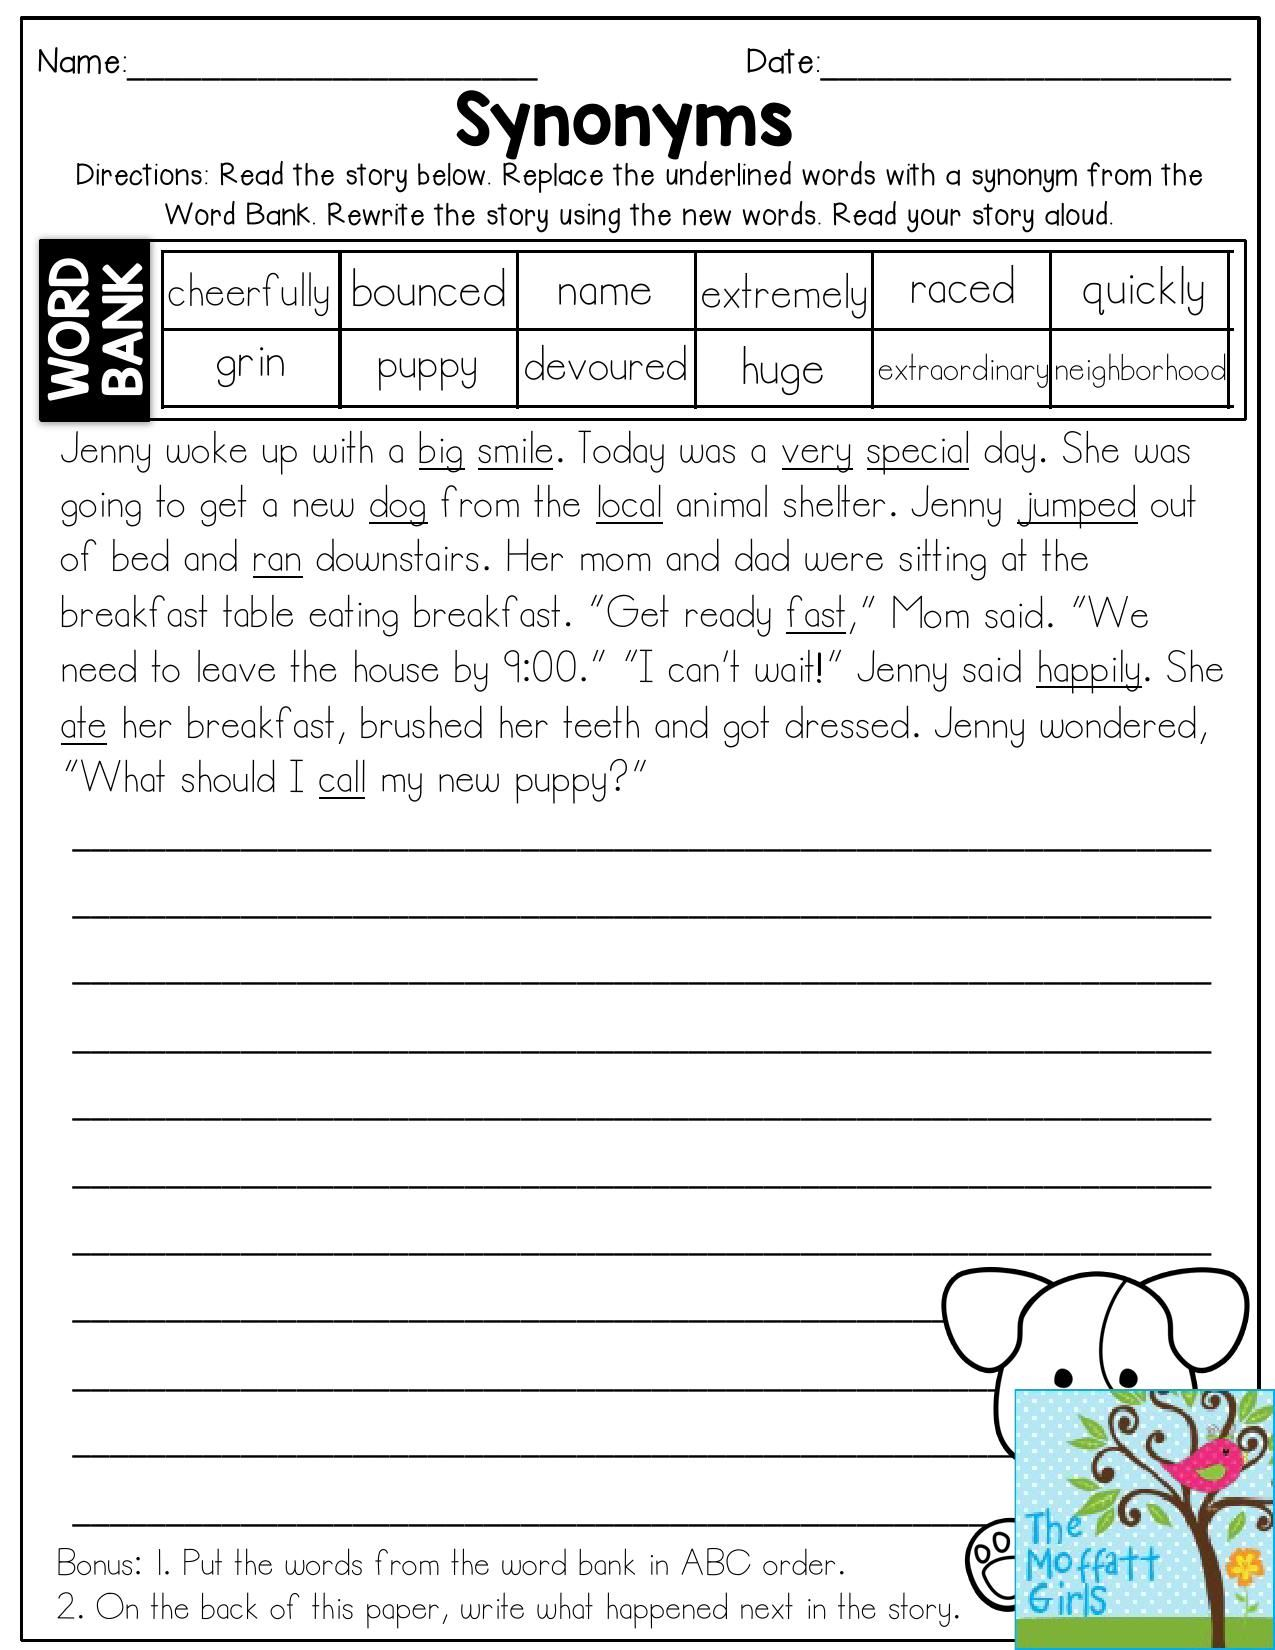 Worksheets Abc Order Worksheets 2nd Grade synonyms read the story and replace underlined words with language arts